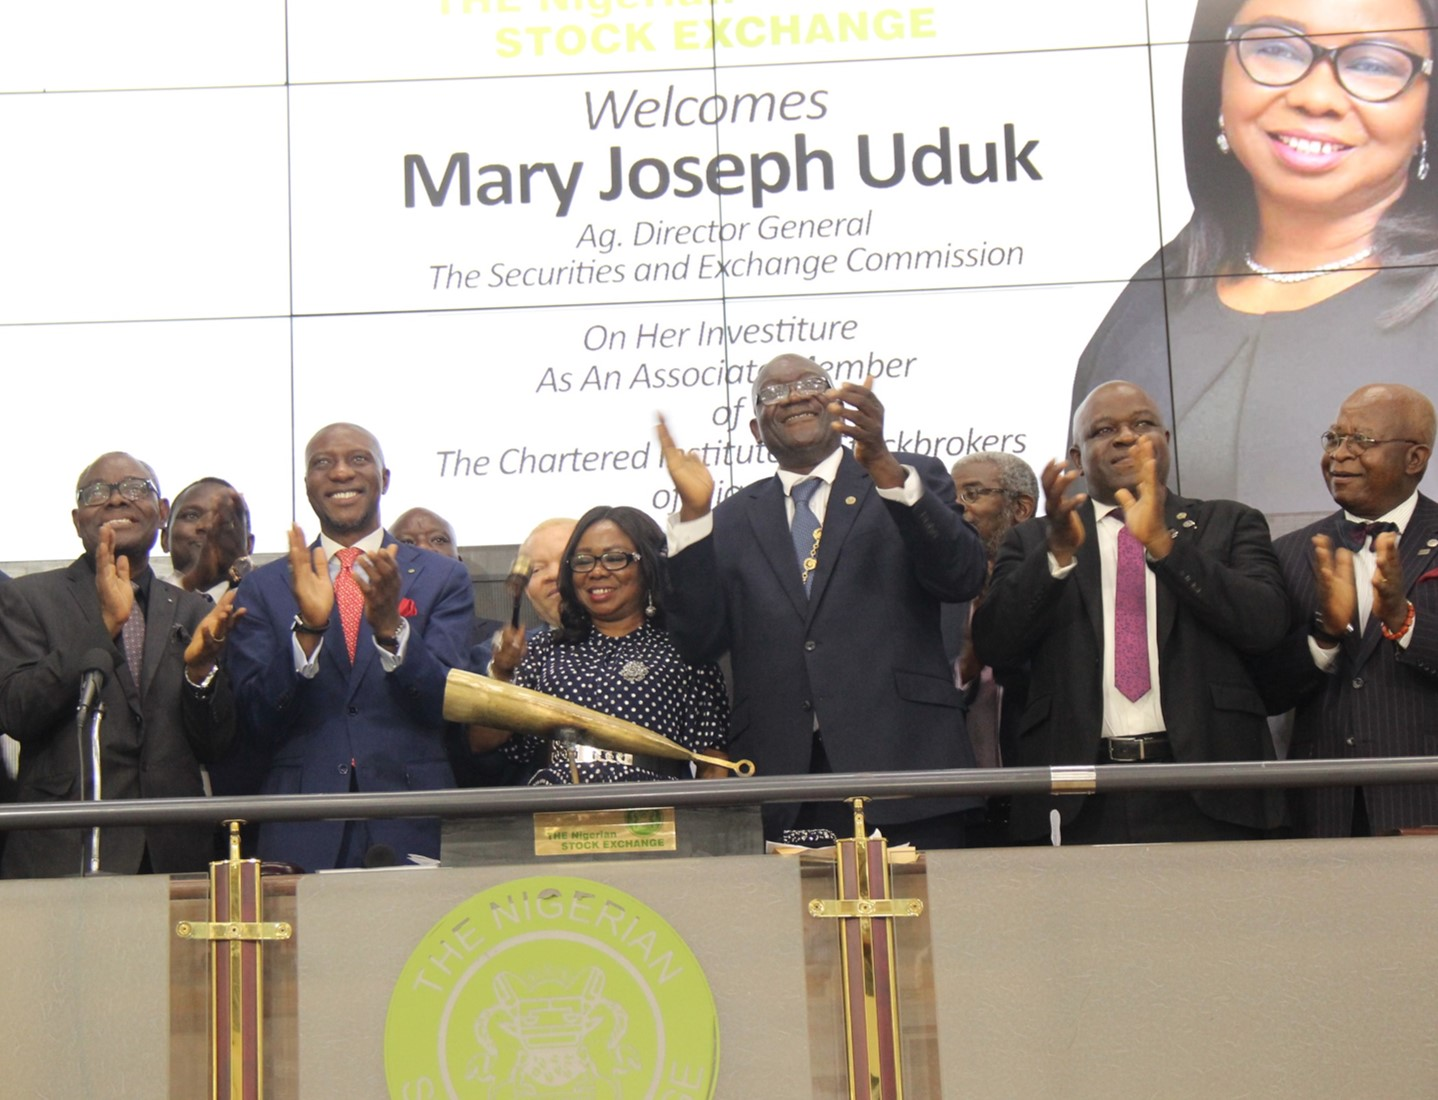 ·         L – R (B) shows Mr. Mike Itegboje, Former President, Chartered Institute of Stockbrokers (CIS); Mr. Oluseyi Abe, Immediate Past President, CIS; Mr. Oscar N. Onyema, OON, Chief Executive Officer, The Nigerian Stock Exchange (NSE); Ms. Mary Uduk, Acting Director General, Securities and Exchange Commission (SEC); Mr. Dapo Adekoje, President, CIS; Oladipo Williams, Past President, CIS and Oladipo Aina, Past President, CIS during the Closing Gong Ceremony in commemoration of the induction ceremony of Ms. Mary Uduk, Acting Director General, SEC at the Exchange today in Lagos.